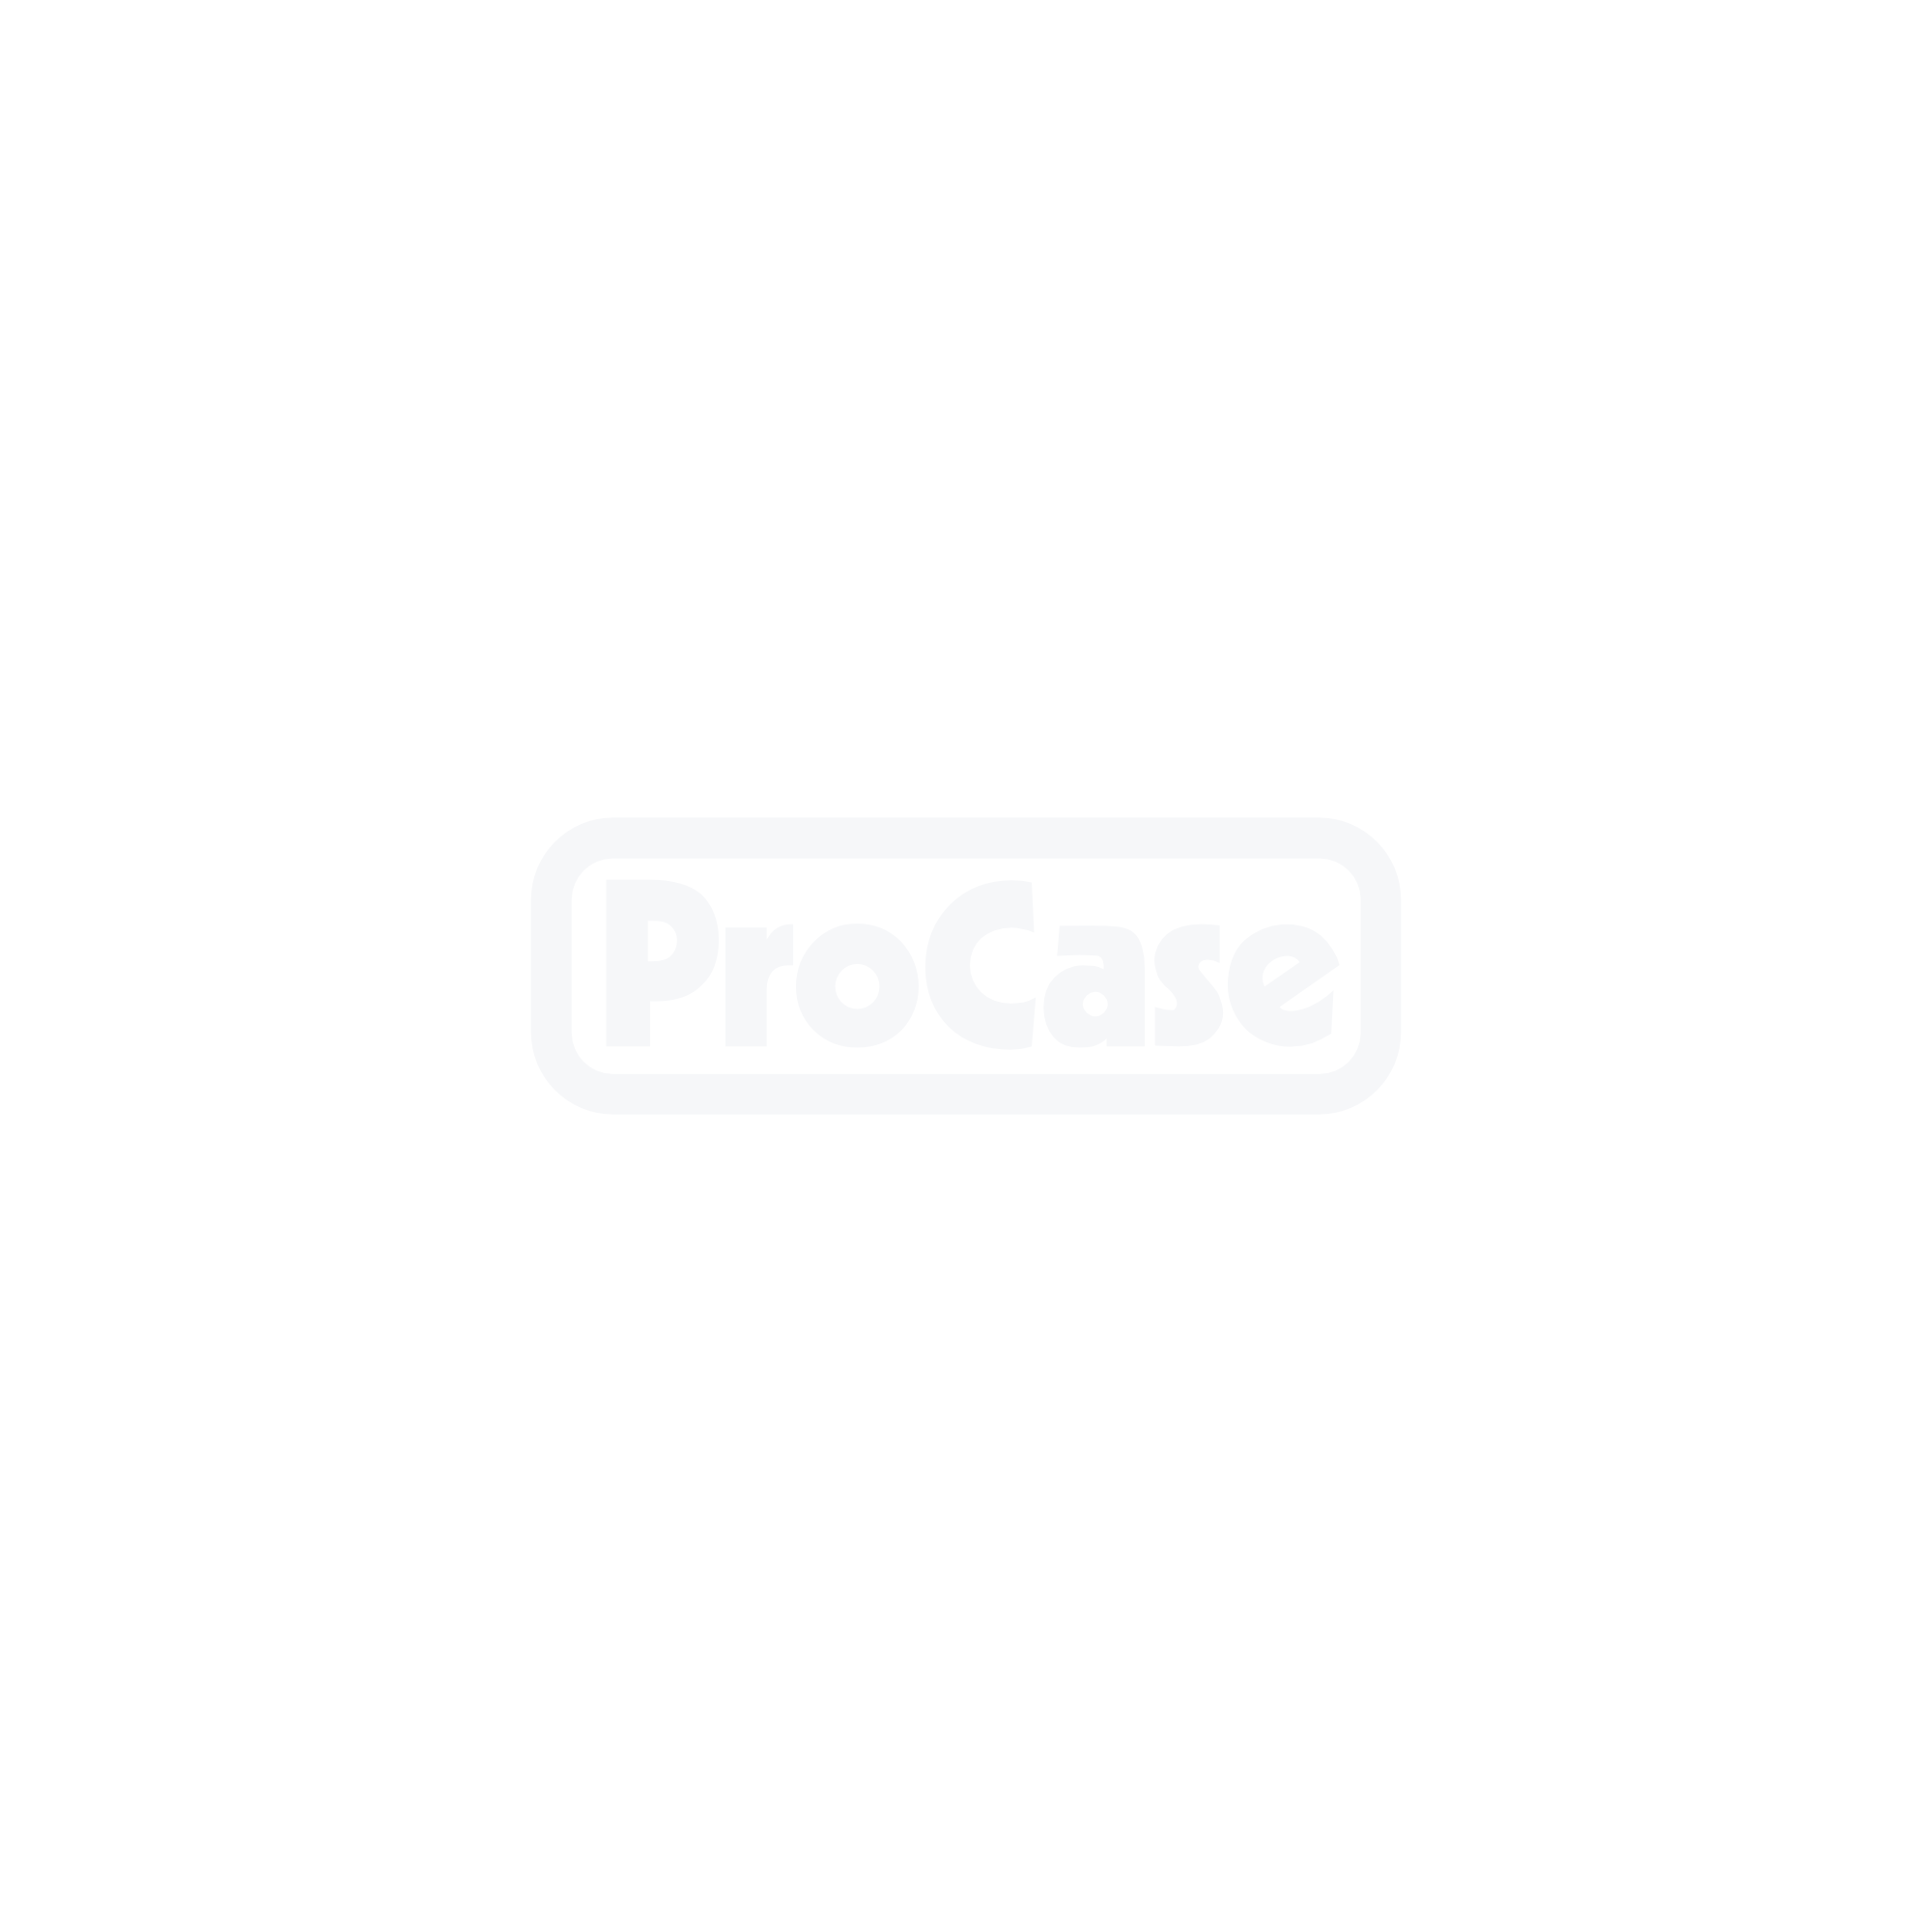 Support Case Techniker Trolley hoch